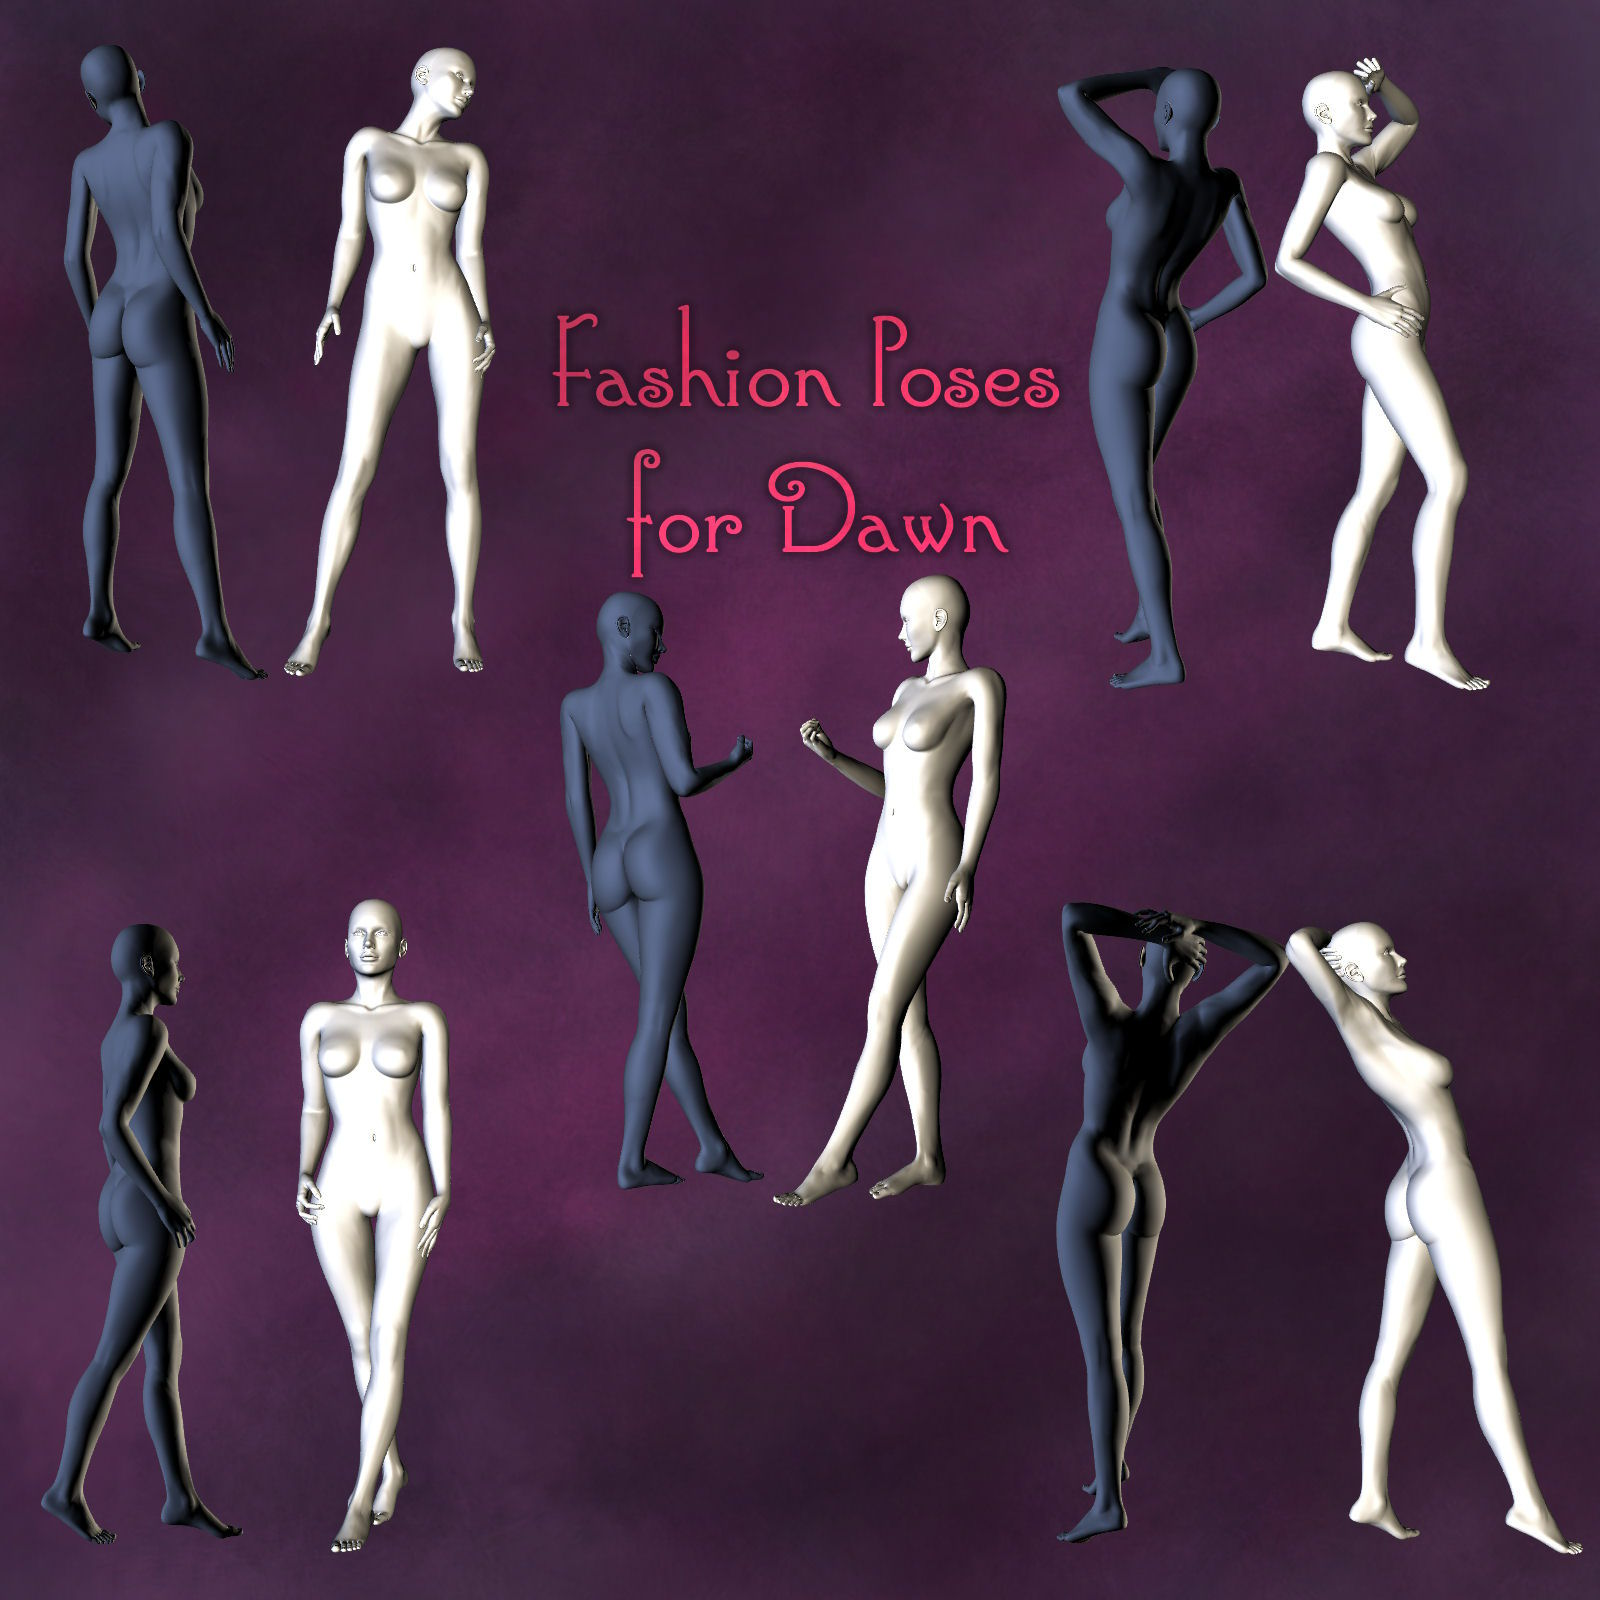 Fashion Poses for Dawn